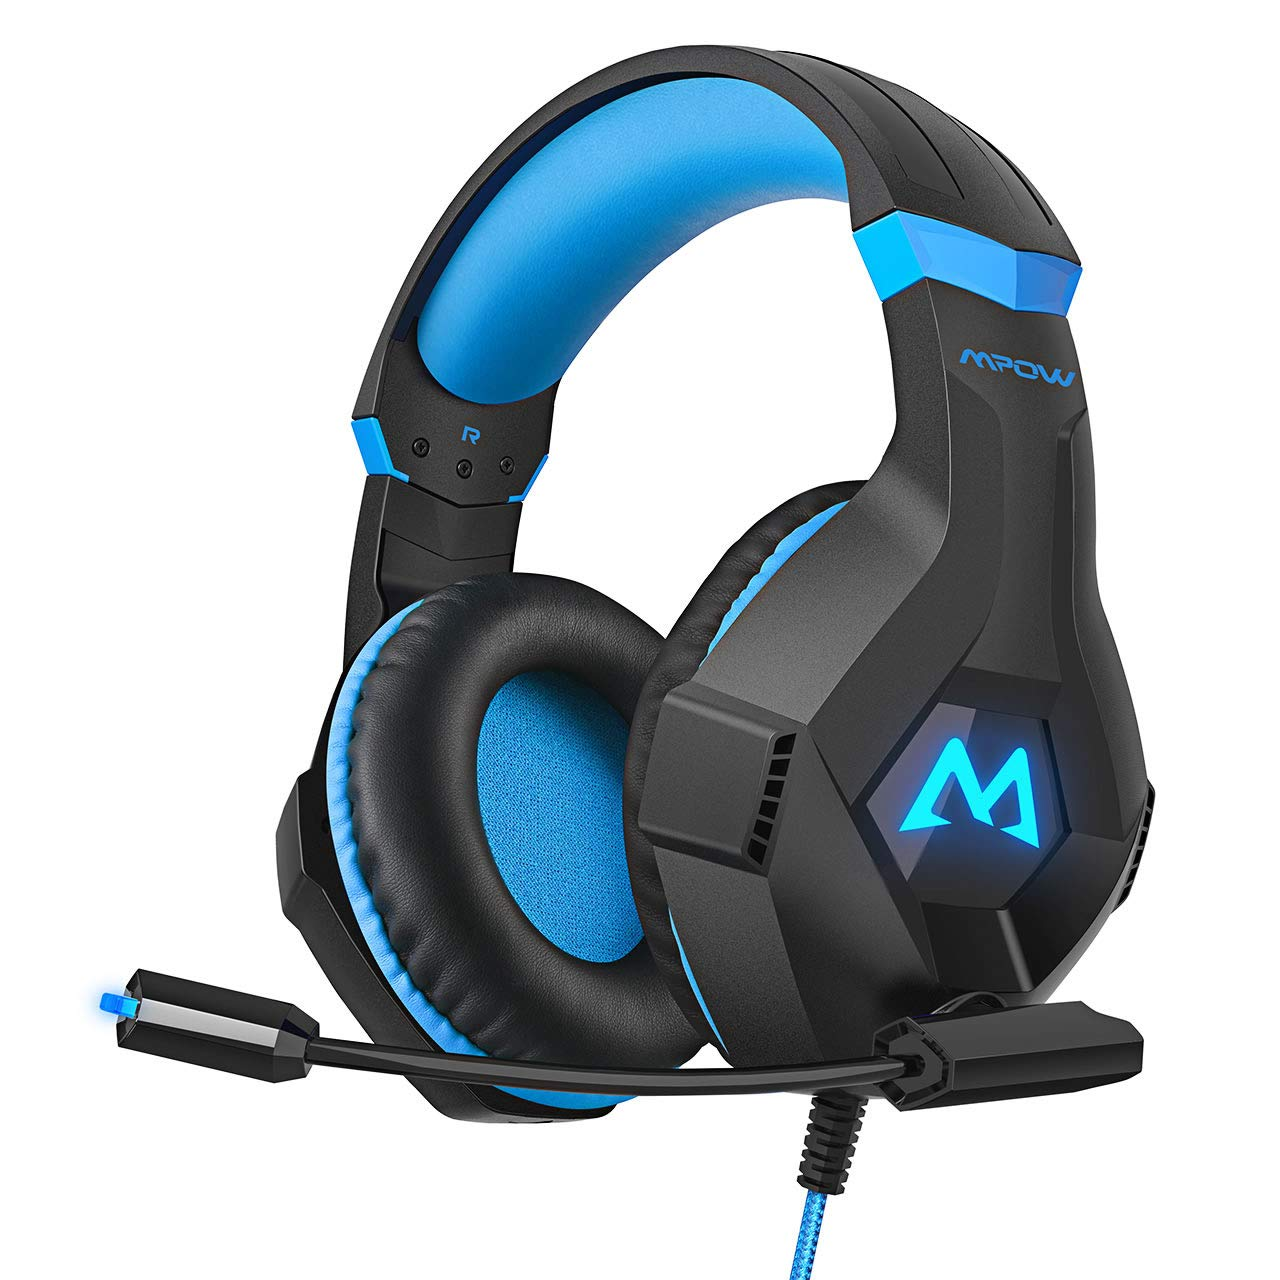 Mpow EG9 Gaming Headset,3D Stereo Surround Sound, Soft Imitation Protein Memory Earmuff, Gaming Headphones with Noise Cancelling Mic Volume Control, RGB Light for PC PS4 Xbox One Nintendo Switch